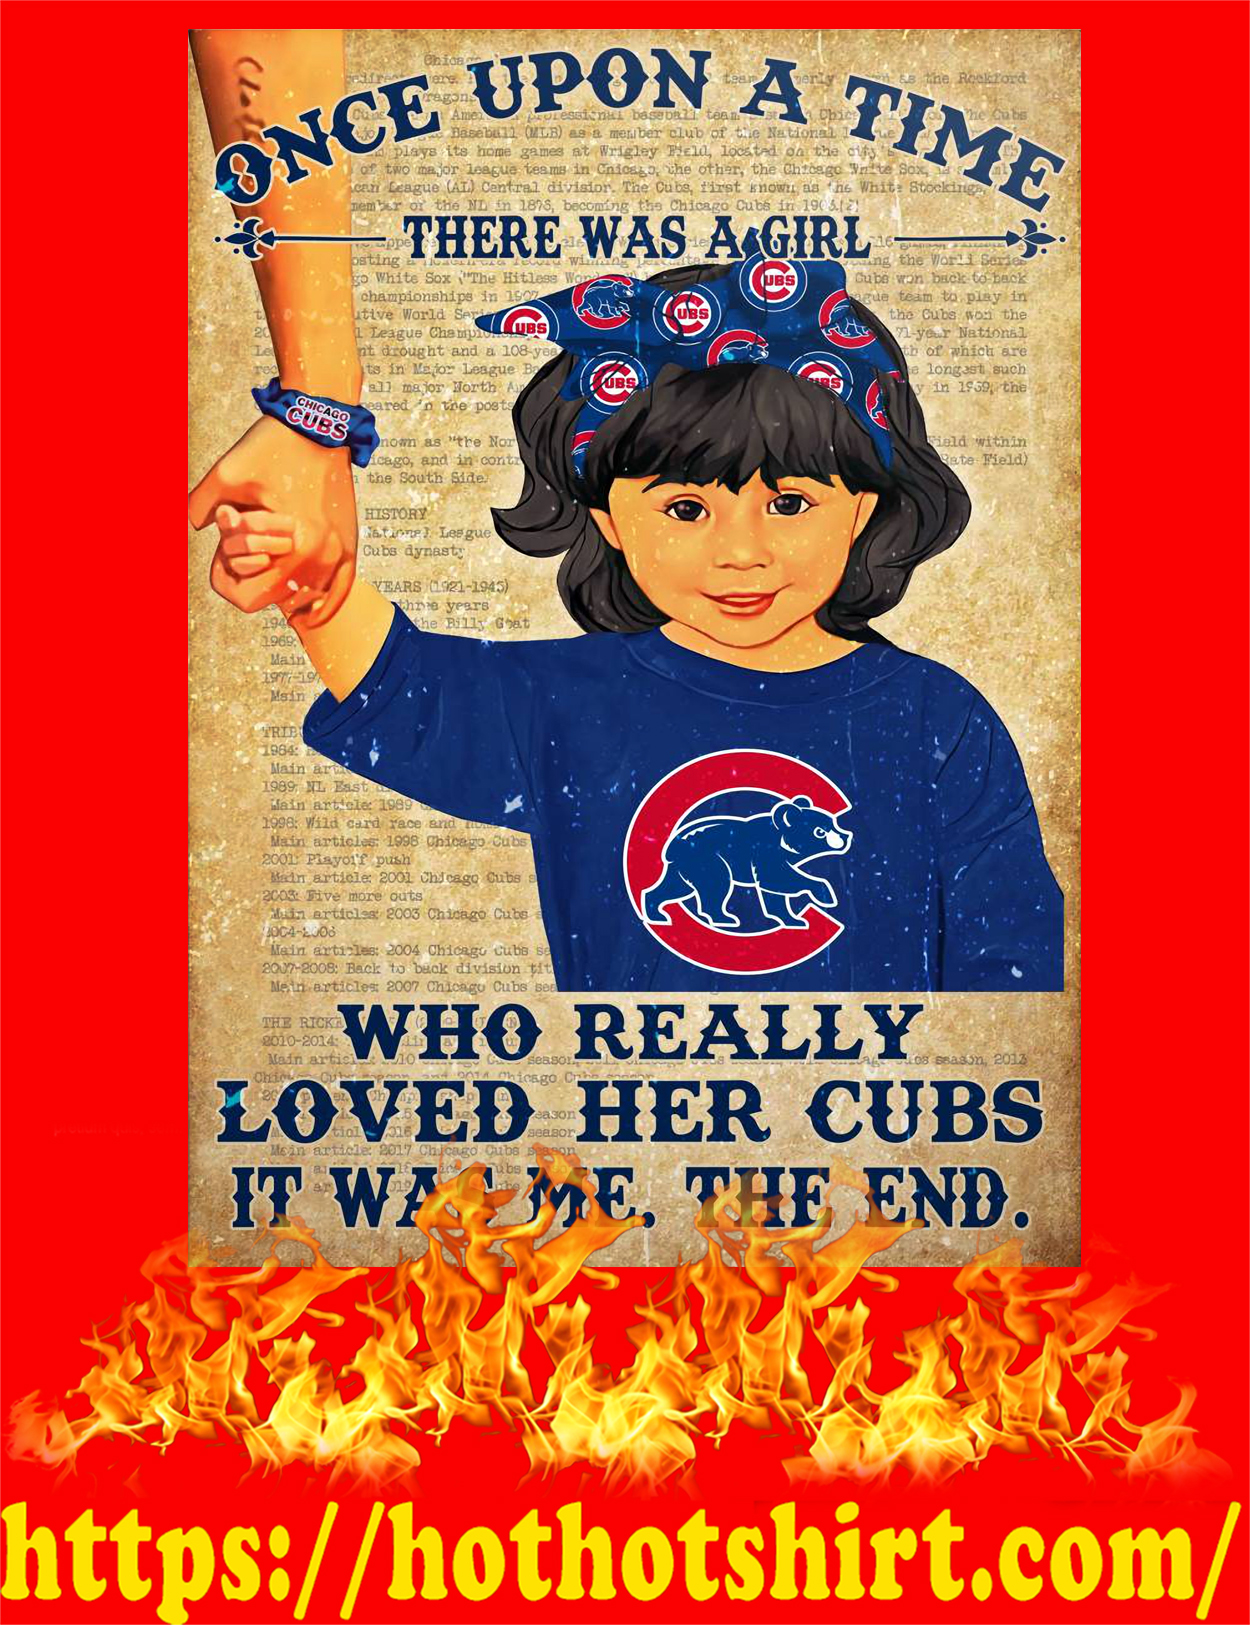 Once upon a time there was a girl who really loved her cubs poster - style 4